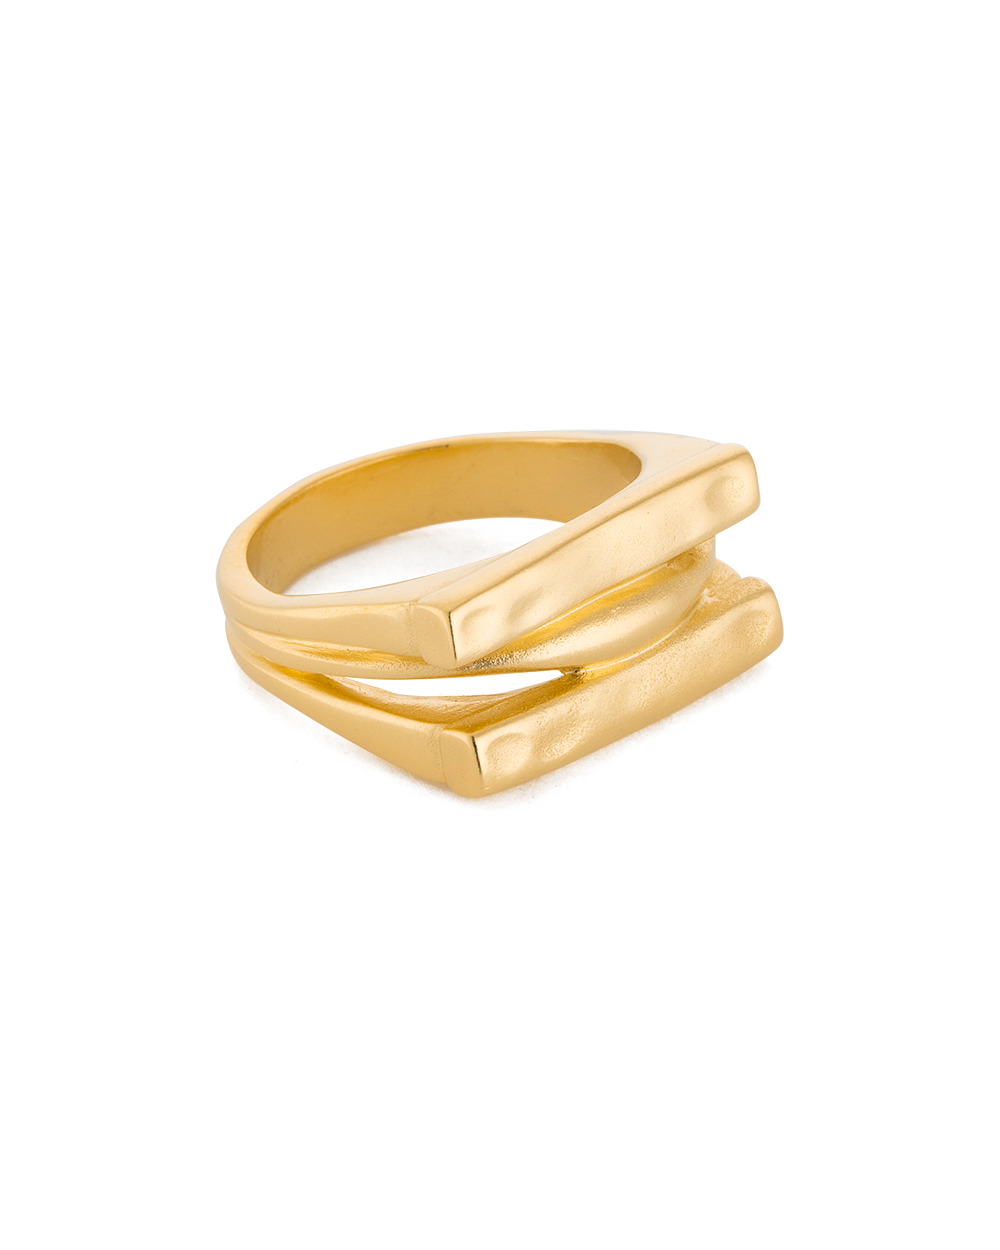 ELEMENTS RING (18K-GOLD-PLATED) - FRONT